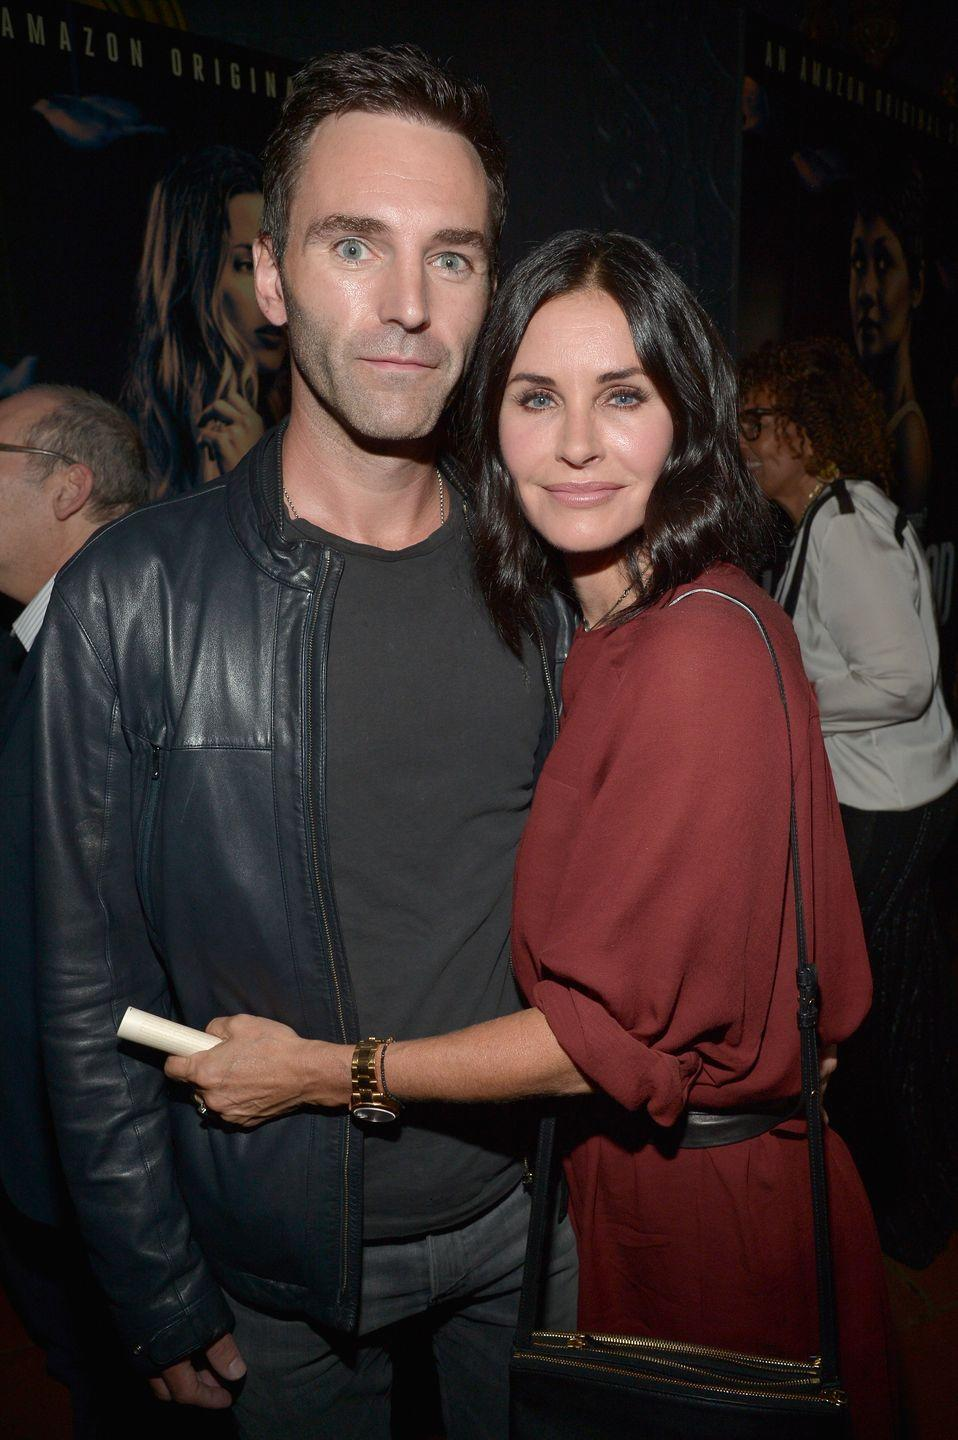 """<p>Friends star Courteney Cox and Snow Patrol musician Johnny McDaid started dating in late 2013. By June 2014, the couple was engaged but <a href=""""https://www.etonline.com/news/177135_courteney_cox_and_johnny_mcdaid_call_off_engagement"""" rel=""""nofollow noopener"""" target=""""_blank"""" data-ylk=""""slk:called it off a year later"""" class=""""link rapid-noclick-resp"""">called it off a year later</a>. The pair spent six months apart before rekindling their romance. 'We broke off our engagement and he moved to England, then we got back together, and it's actually better than it was before,' <a href=""""https://www.etonline.com/courteney-cox-says-relationship-with-musician-johnny-mcdaid-is-stronger-after-ending-engagement"""" rel=""""nofollow noopener"""" target=""""_blank"""" data-ylk=""""slk:Courteney told ET Online"""" class=""""link rapid-noclick-resp"""">Courteney told ET Online</a> in January 2019. 'Everything's better.'</p>"""